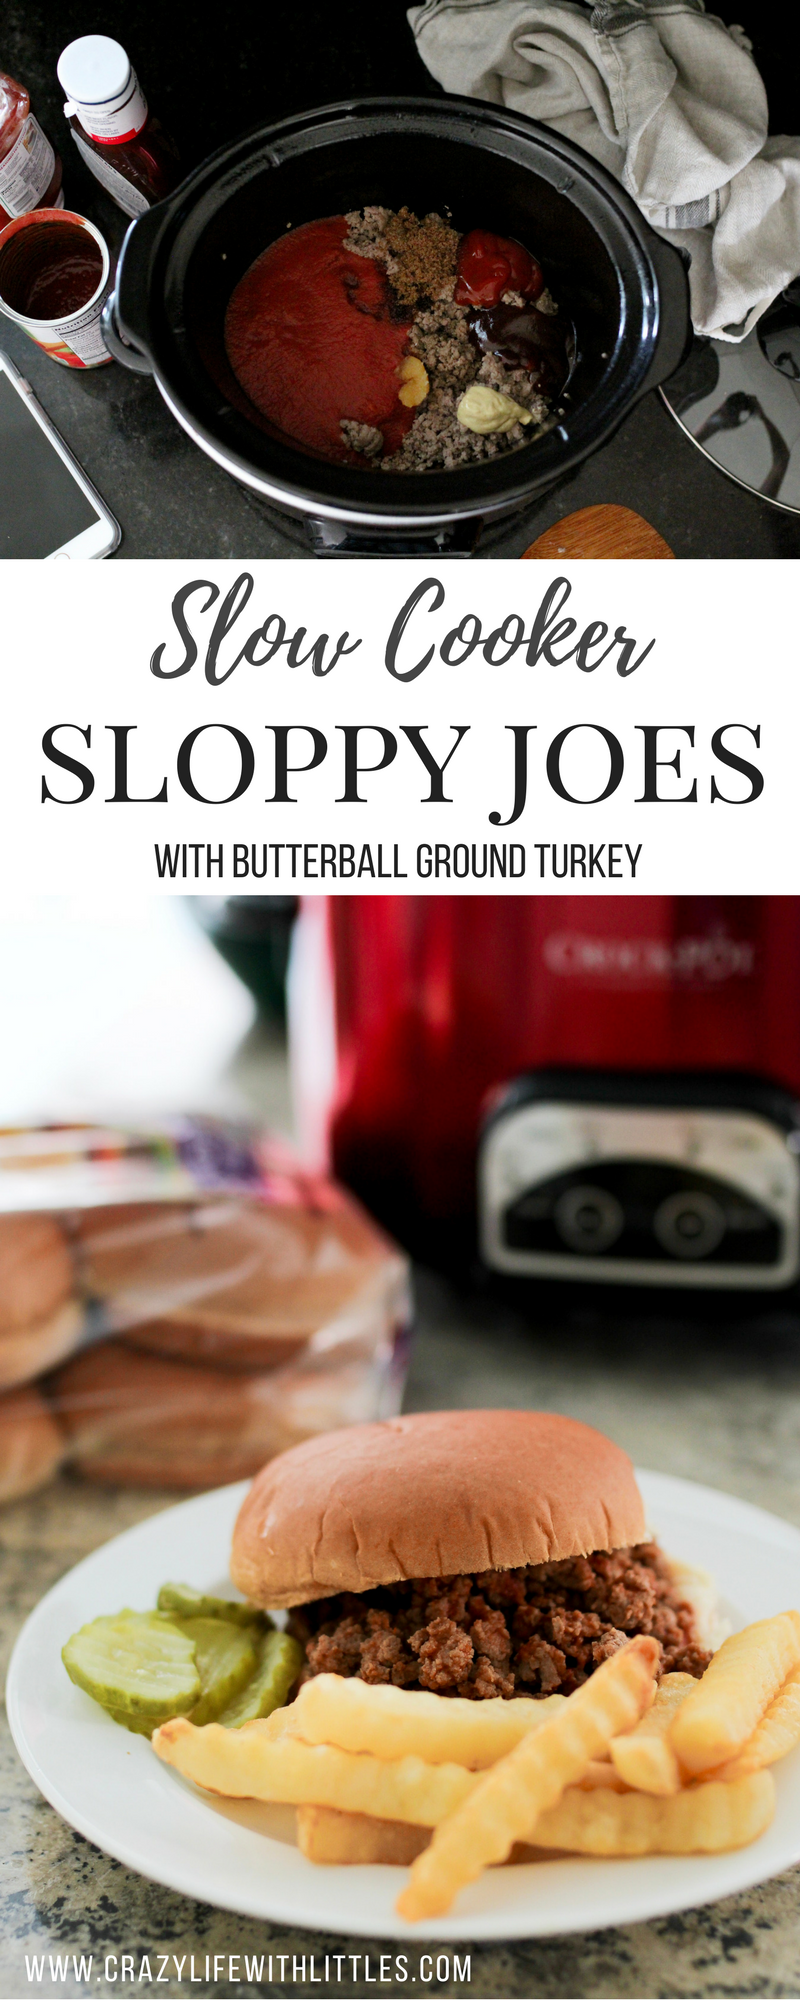 Easy Weeknight Dinners, Slow Cooker Sloppy Joes, Crockpot Sloppy Joes, Butterball Ground Turkey recipes